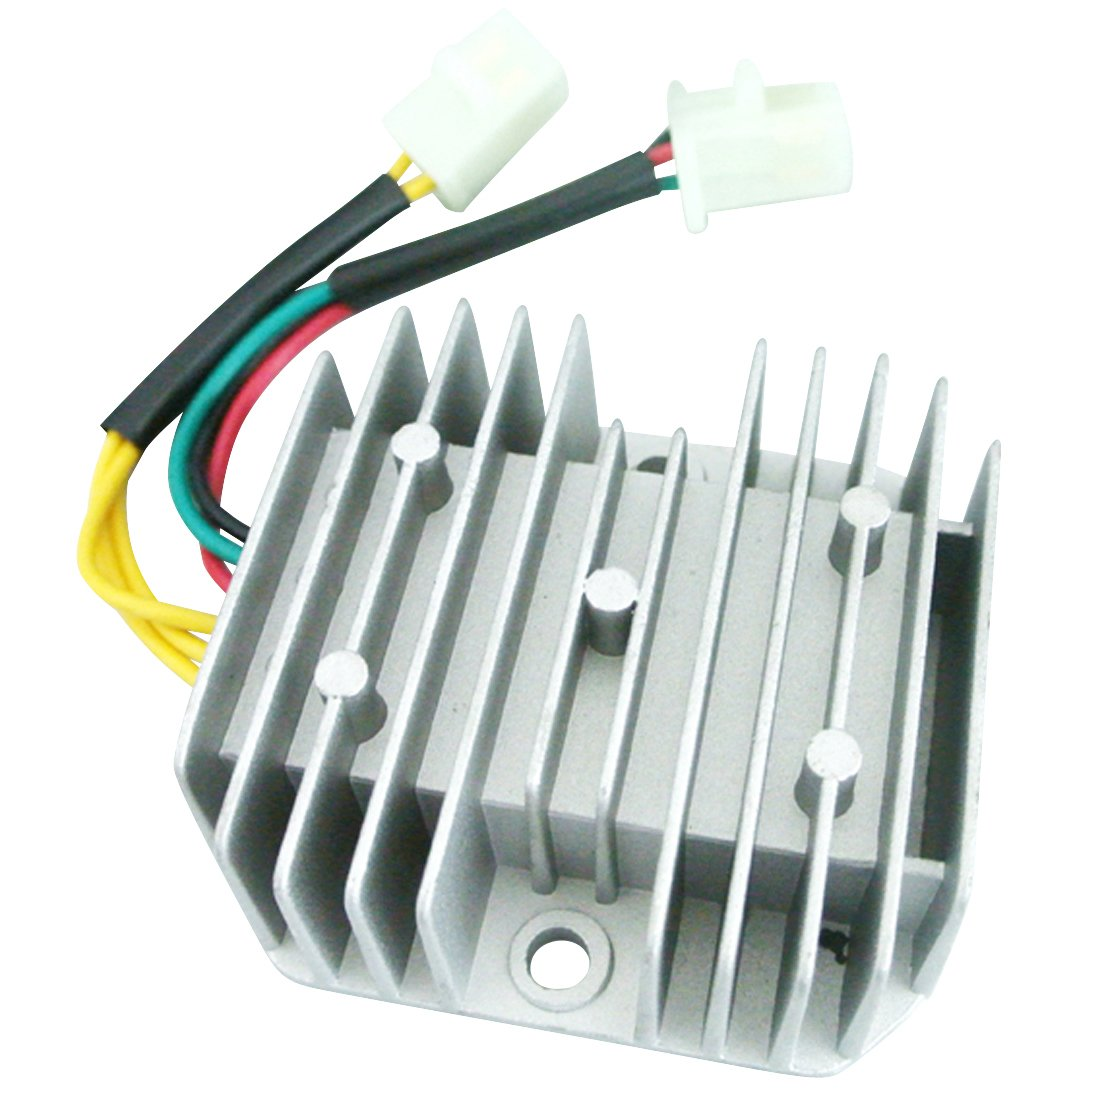 Amazon.com: New 12V 6-Wire DC Voltage Regulator Rectifier For GY6 ...